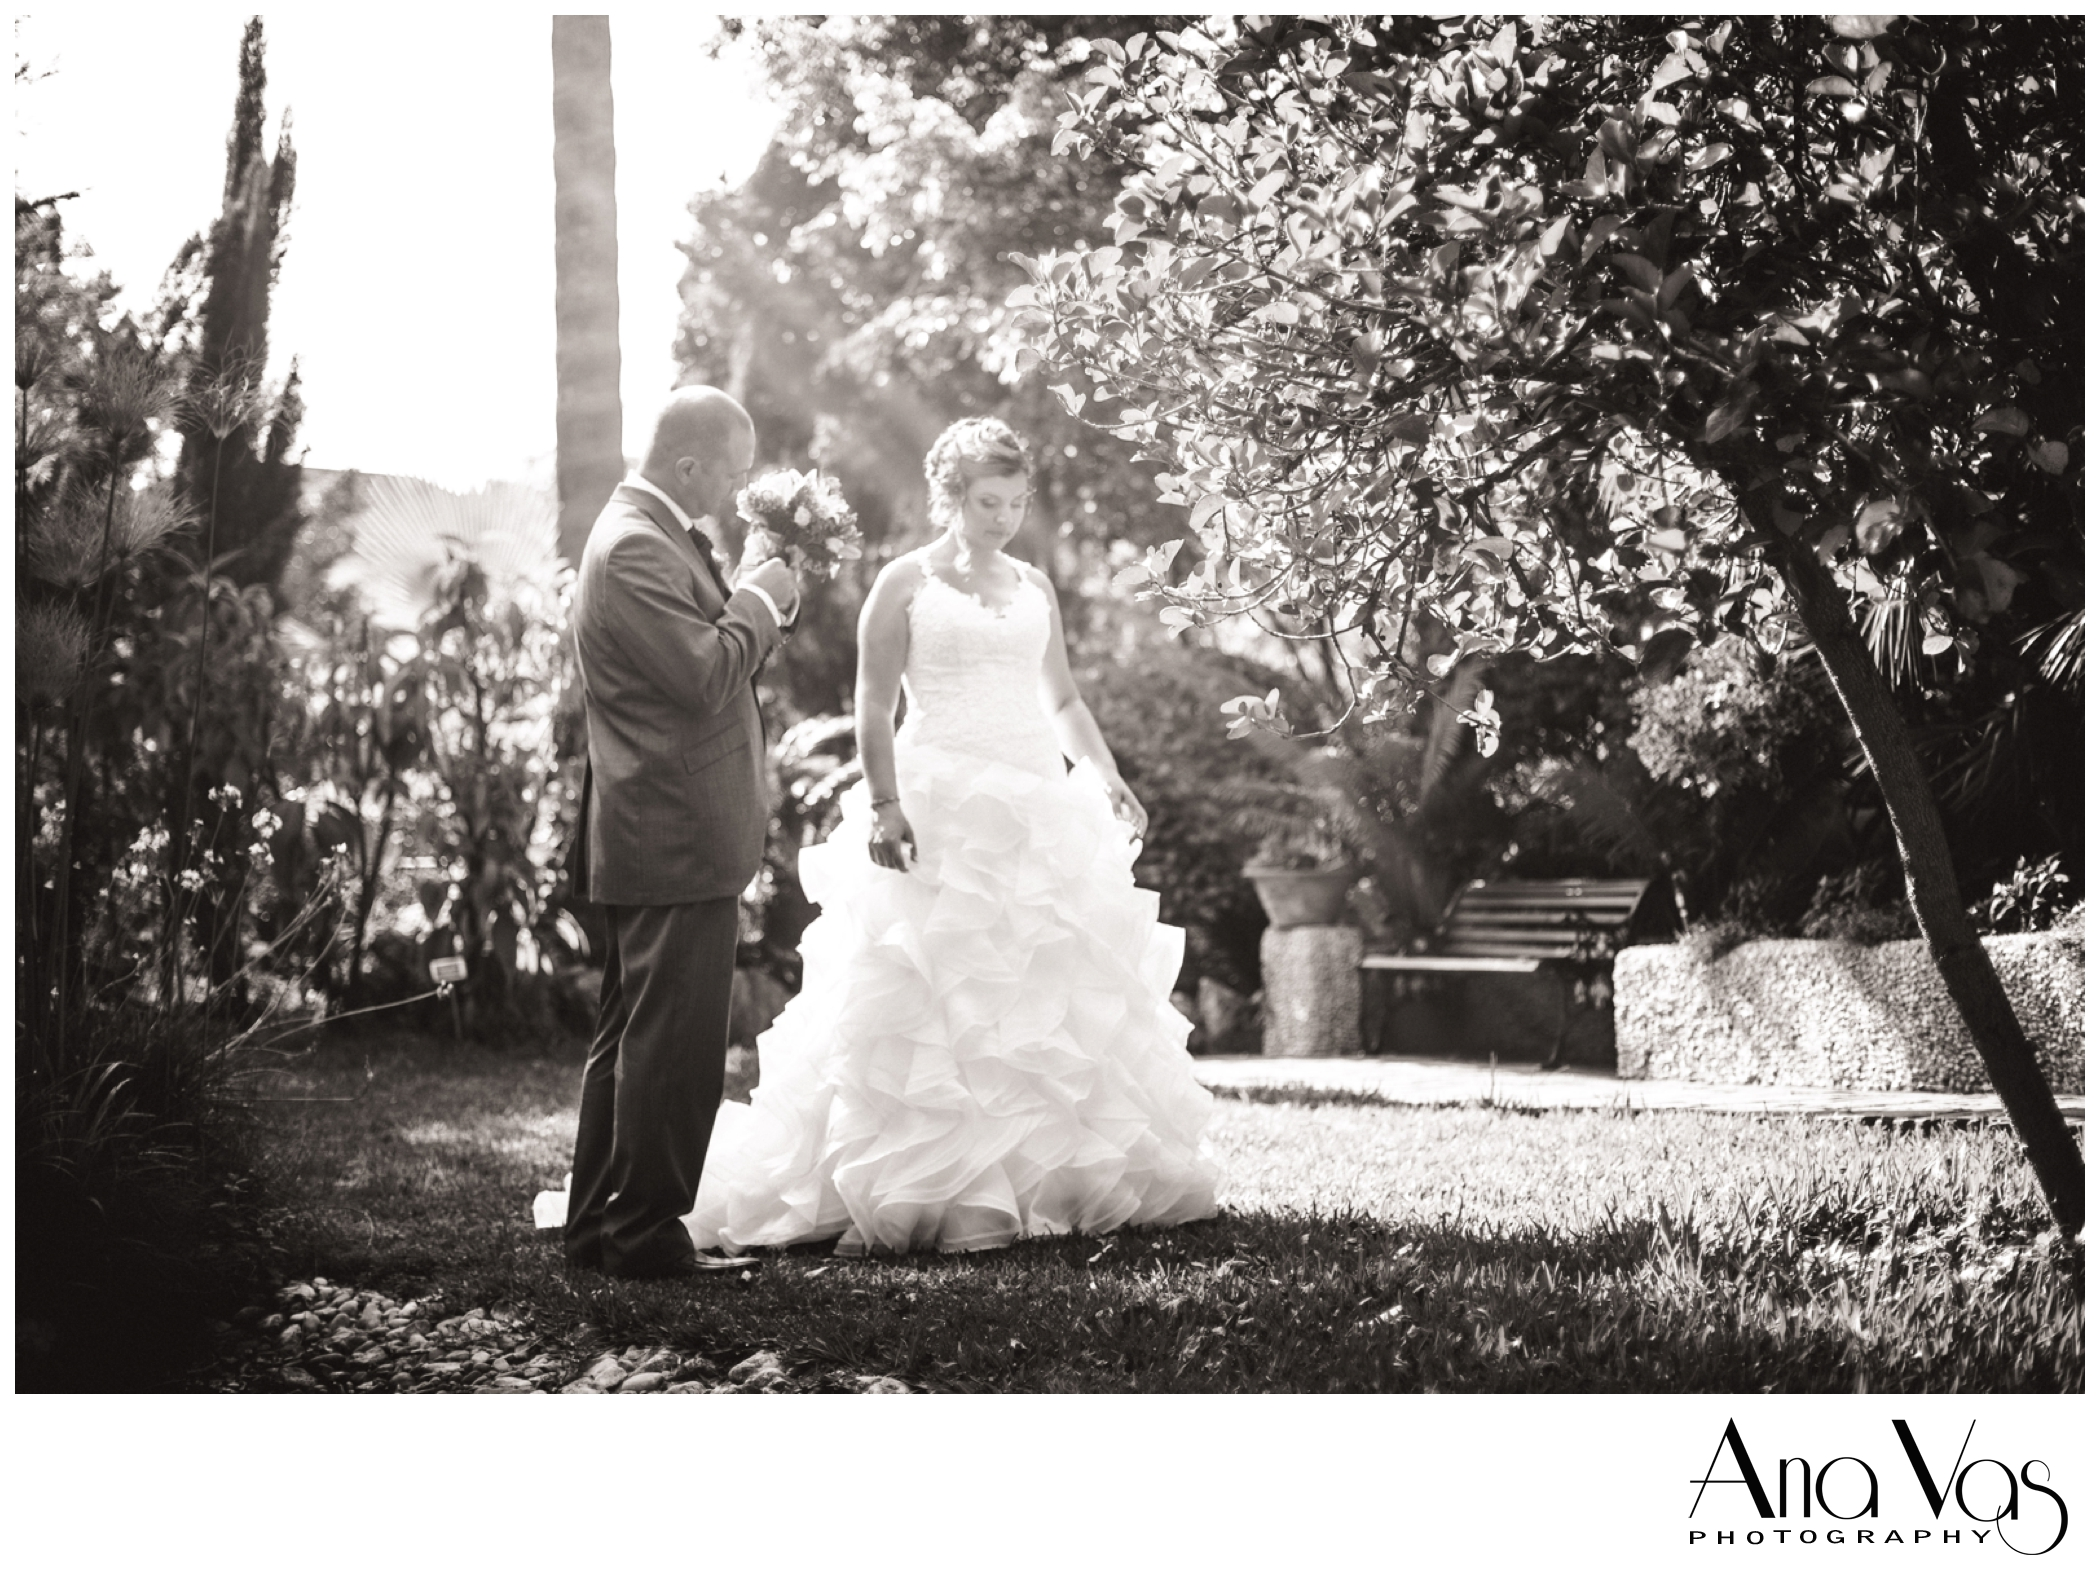 Bridal Portrait at the Alameda Gardens